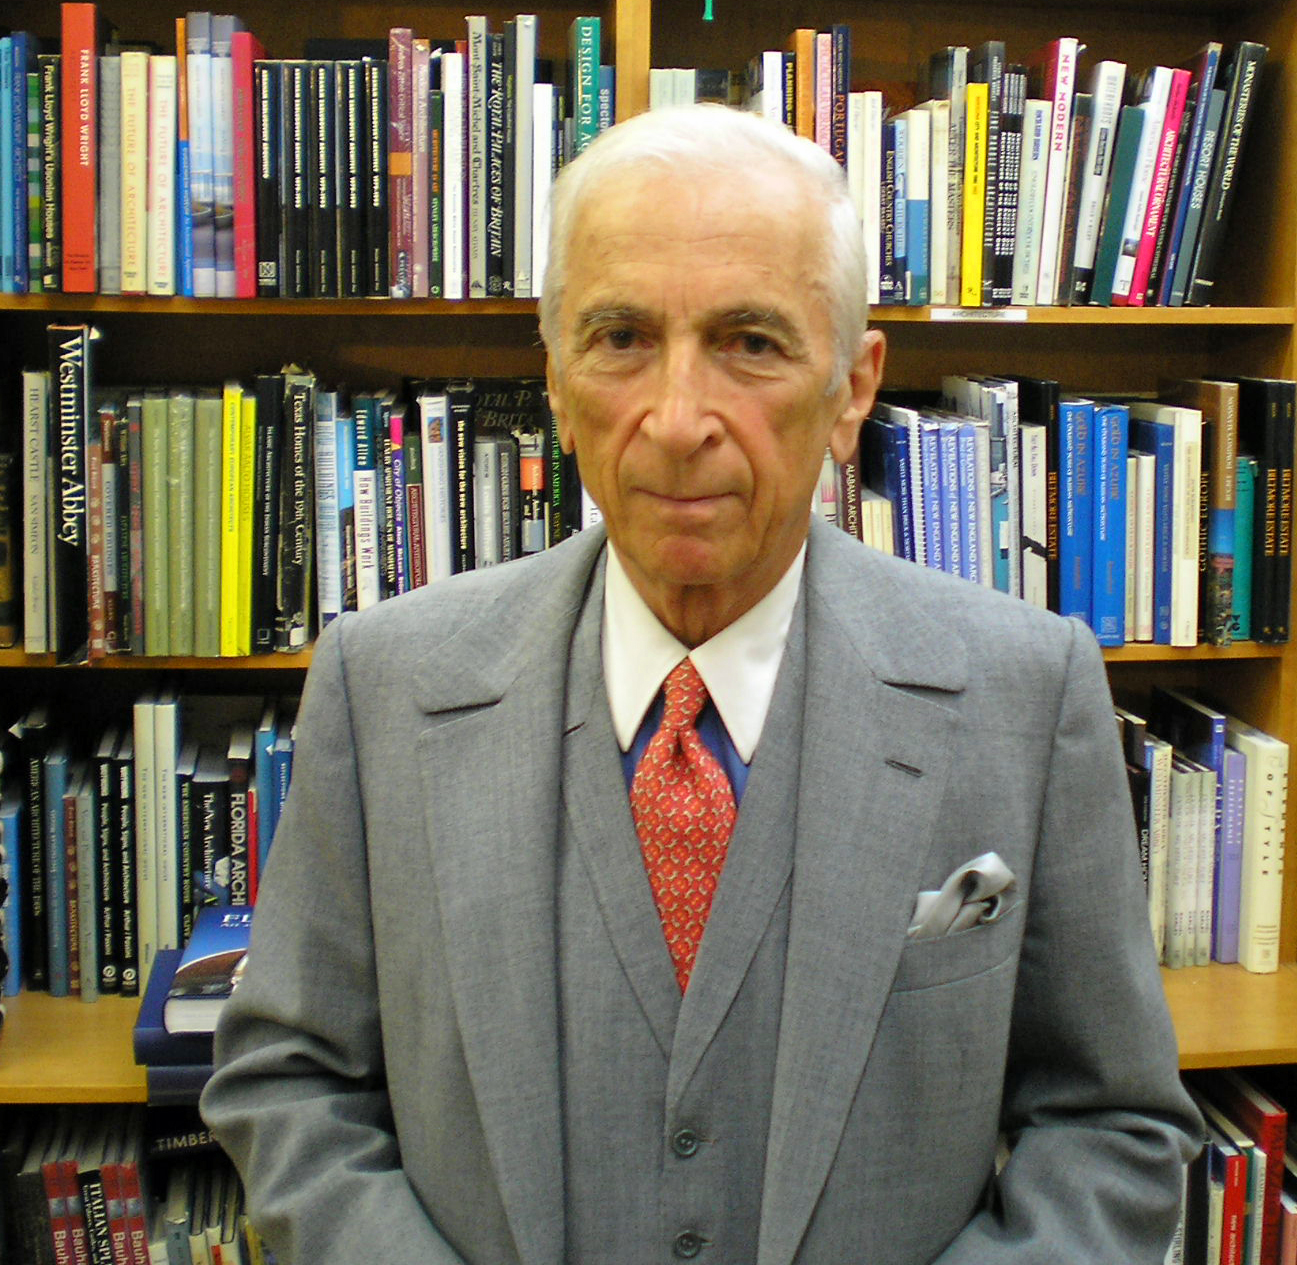 Gay Talese's quote